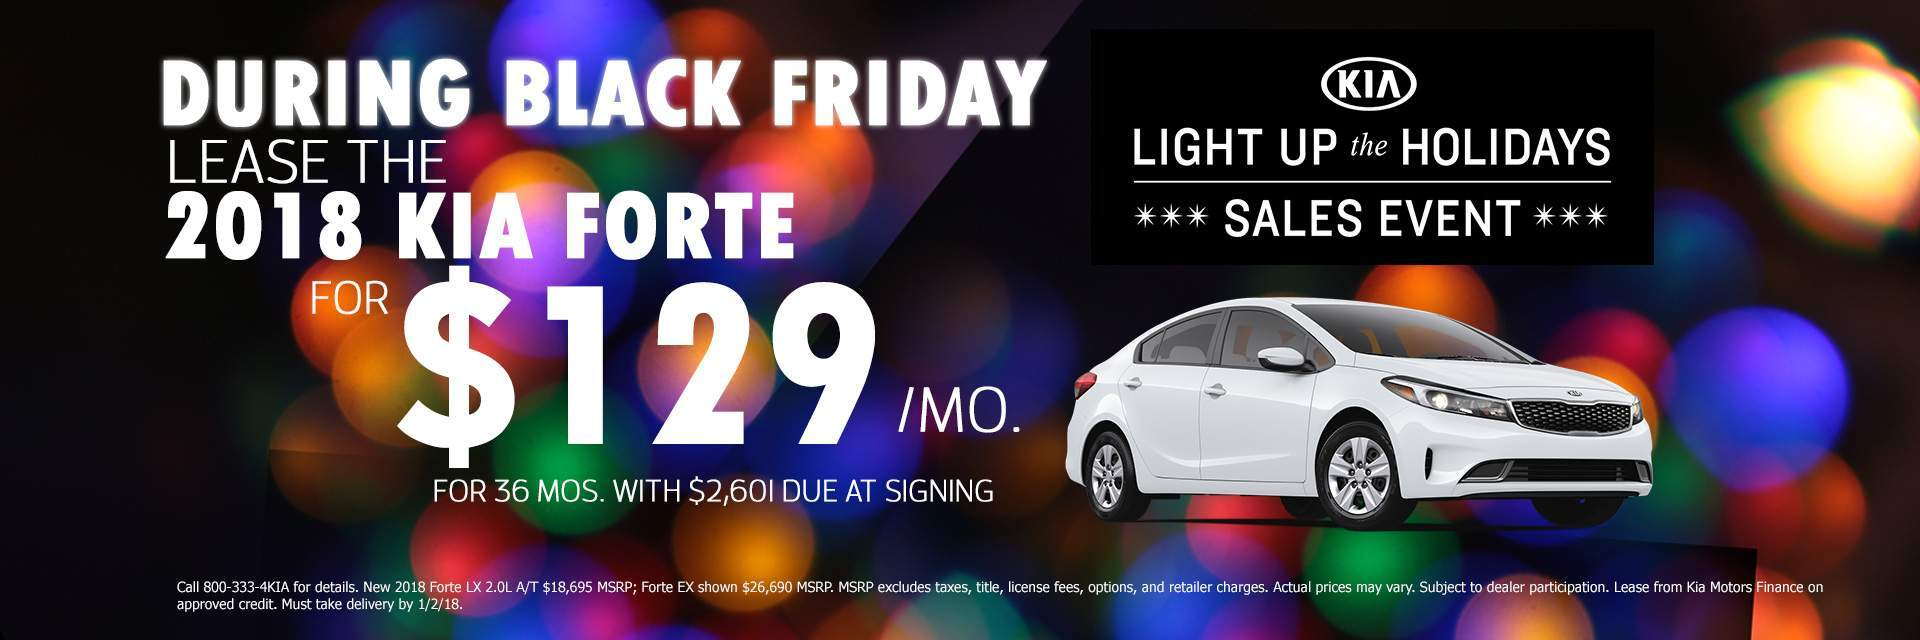 Black Friday 2018 KIA Forte